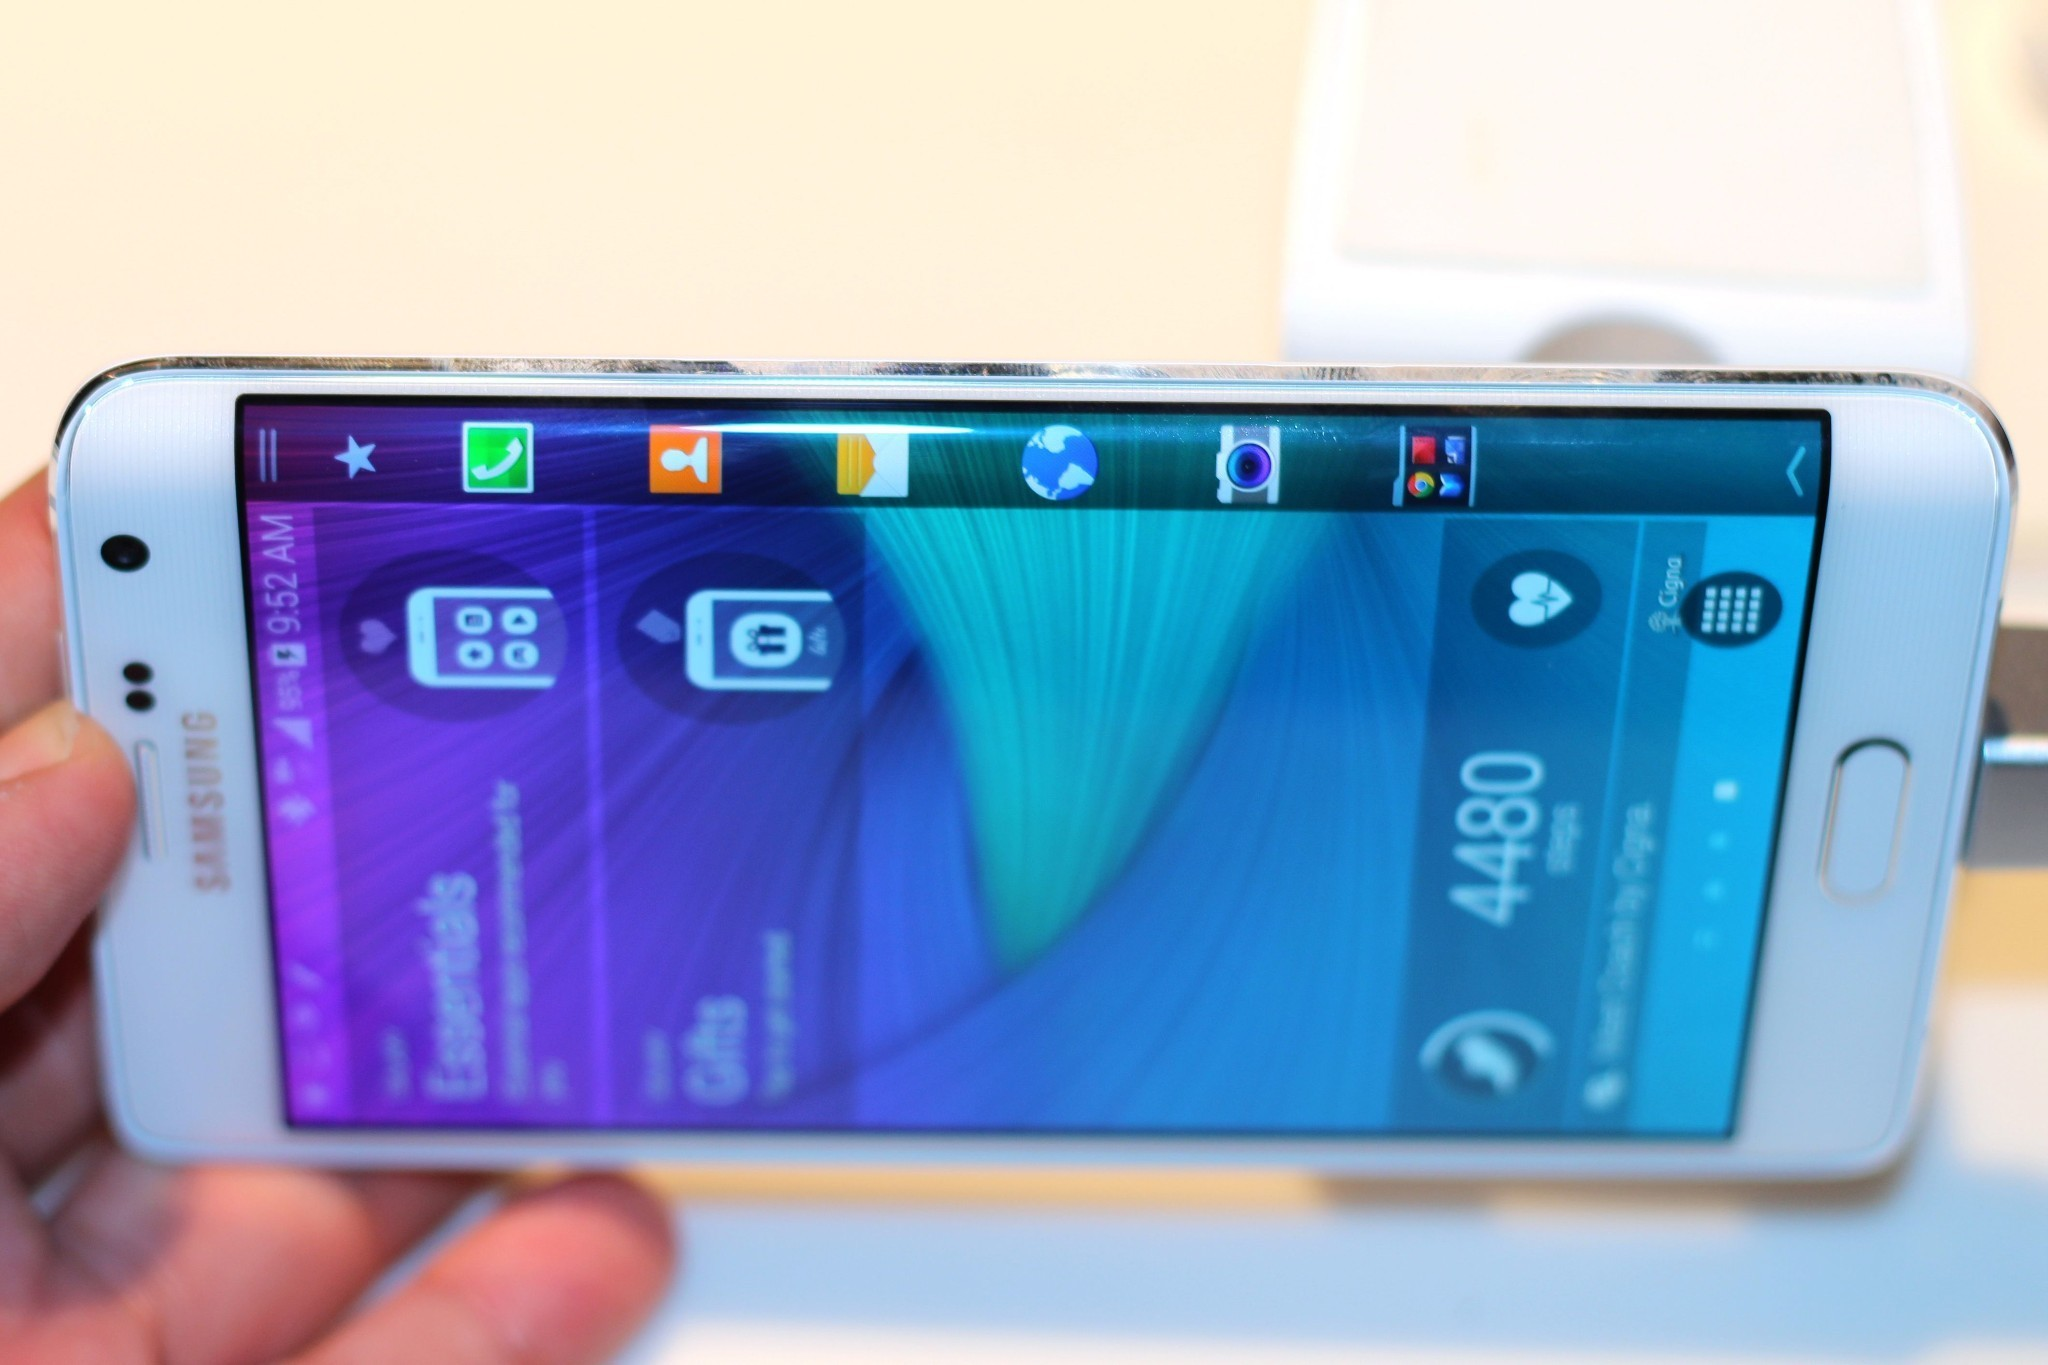 Rumor roundup: Galaxy S6, Samsung's hottest phone in years